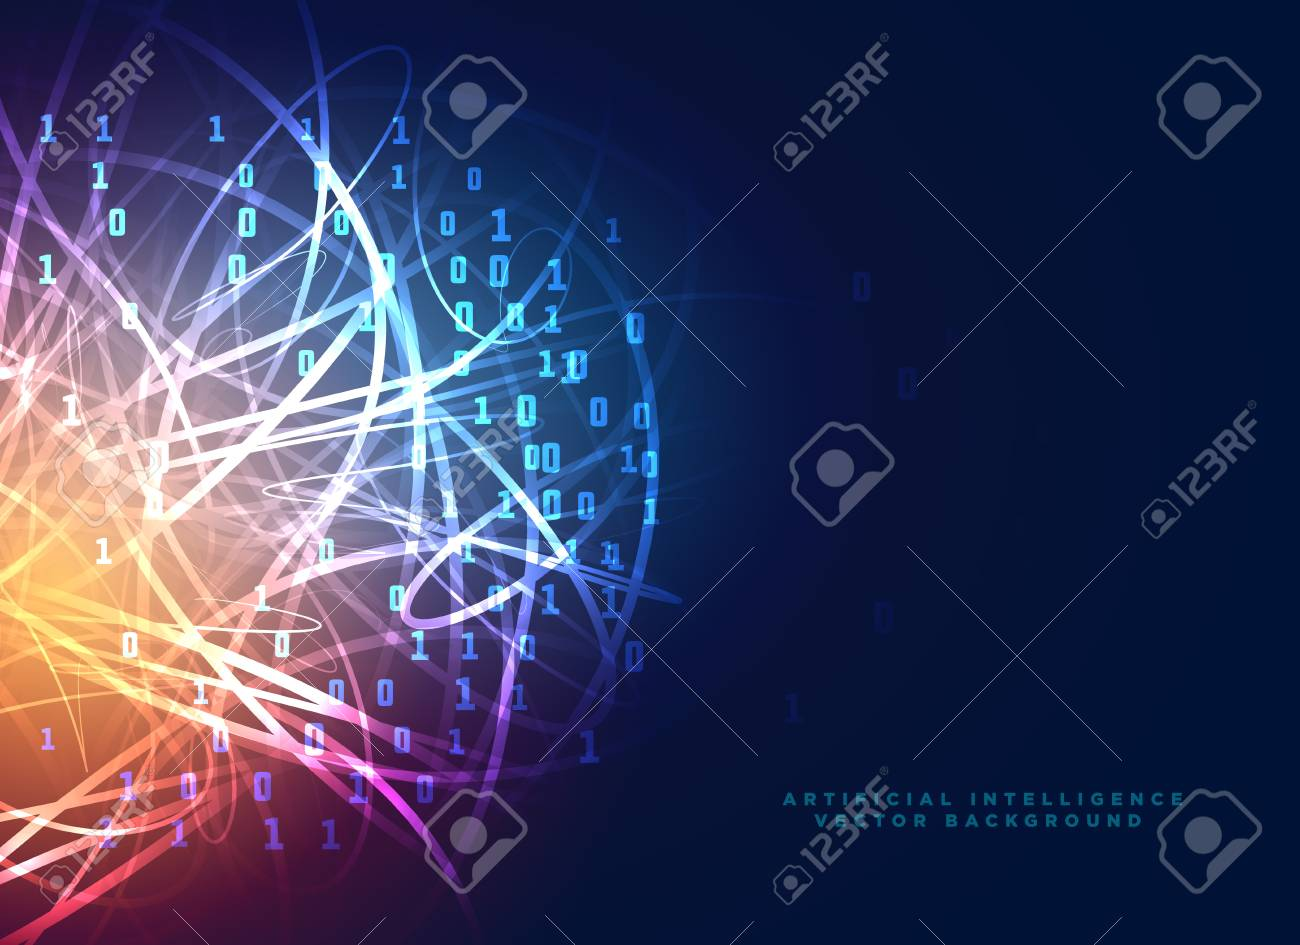 digital technology design with abstract letwork lines and binary code - 96952102